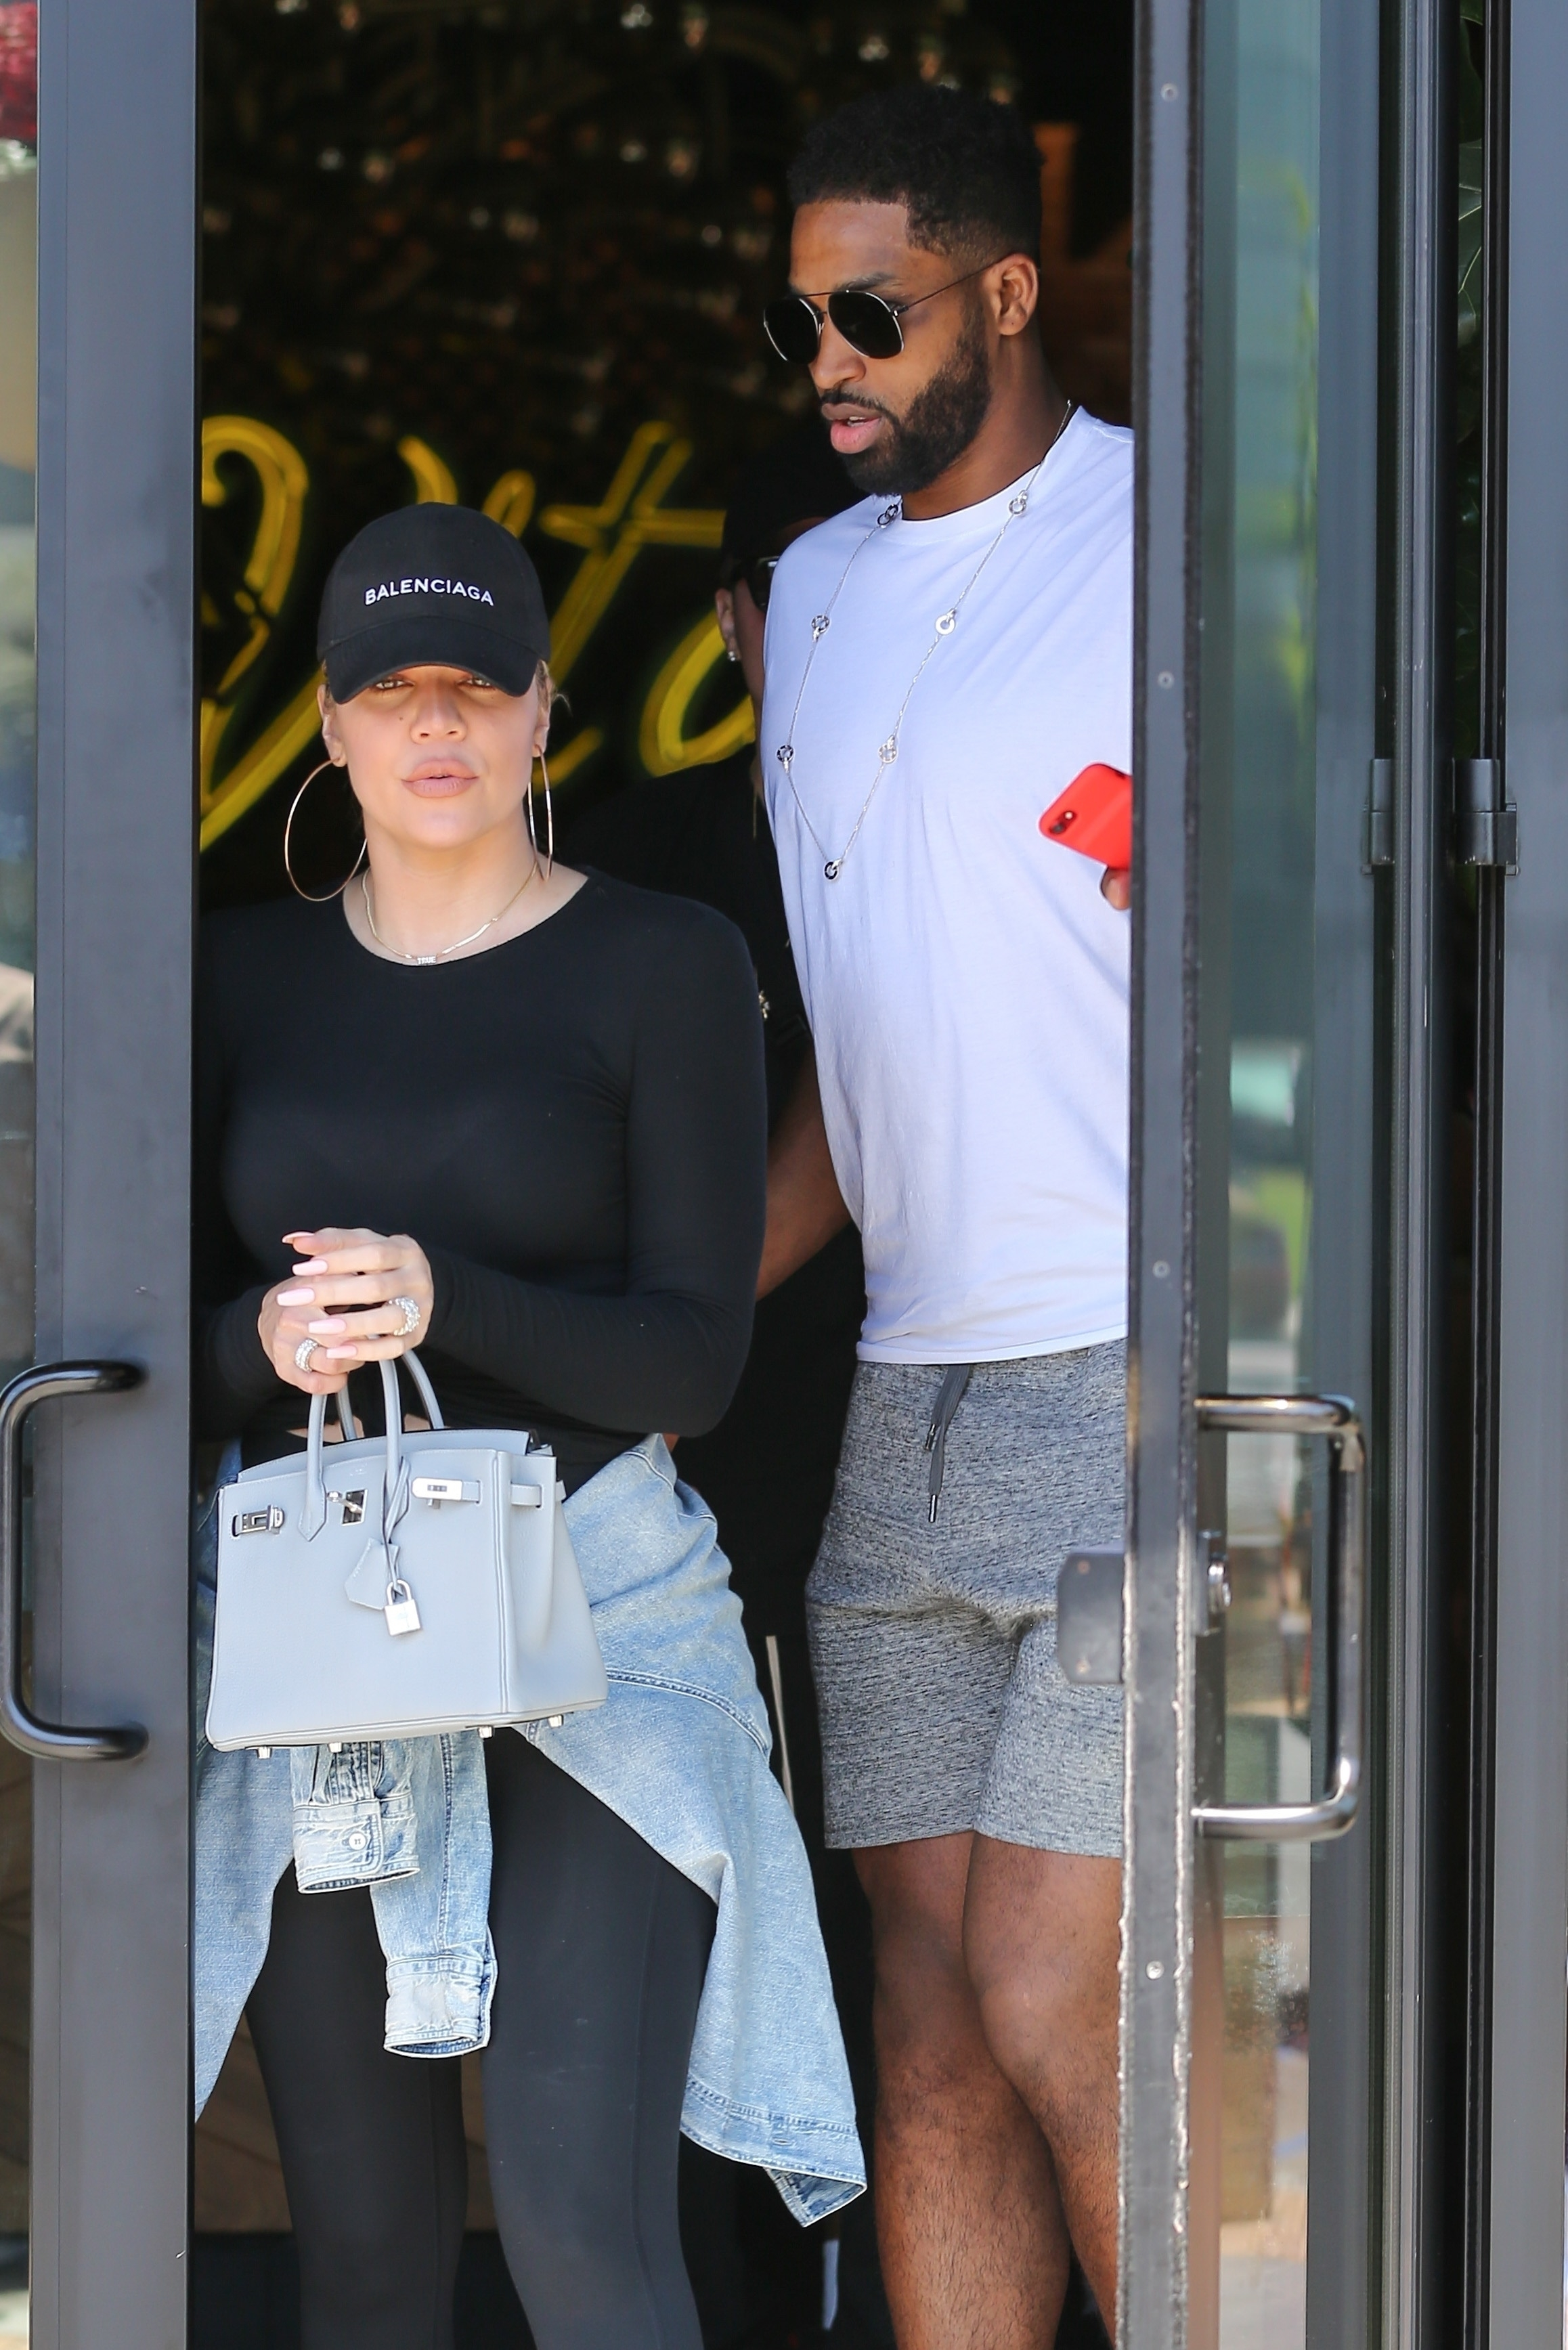 Khloe Kardashian 'is skeptical' when it comes to her relationship with Tristan Thompson